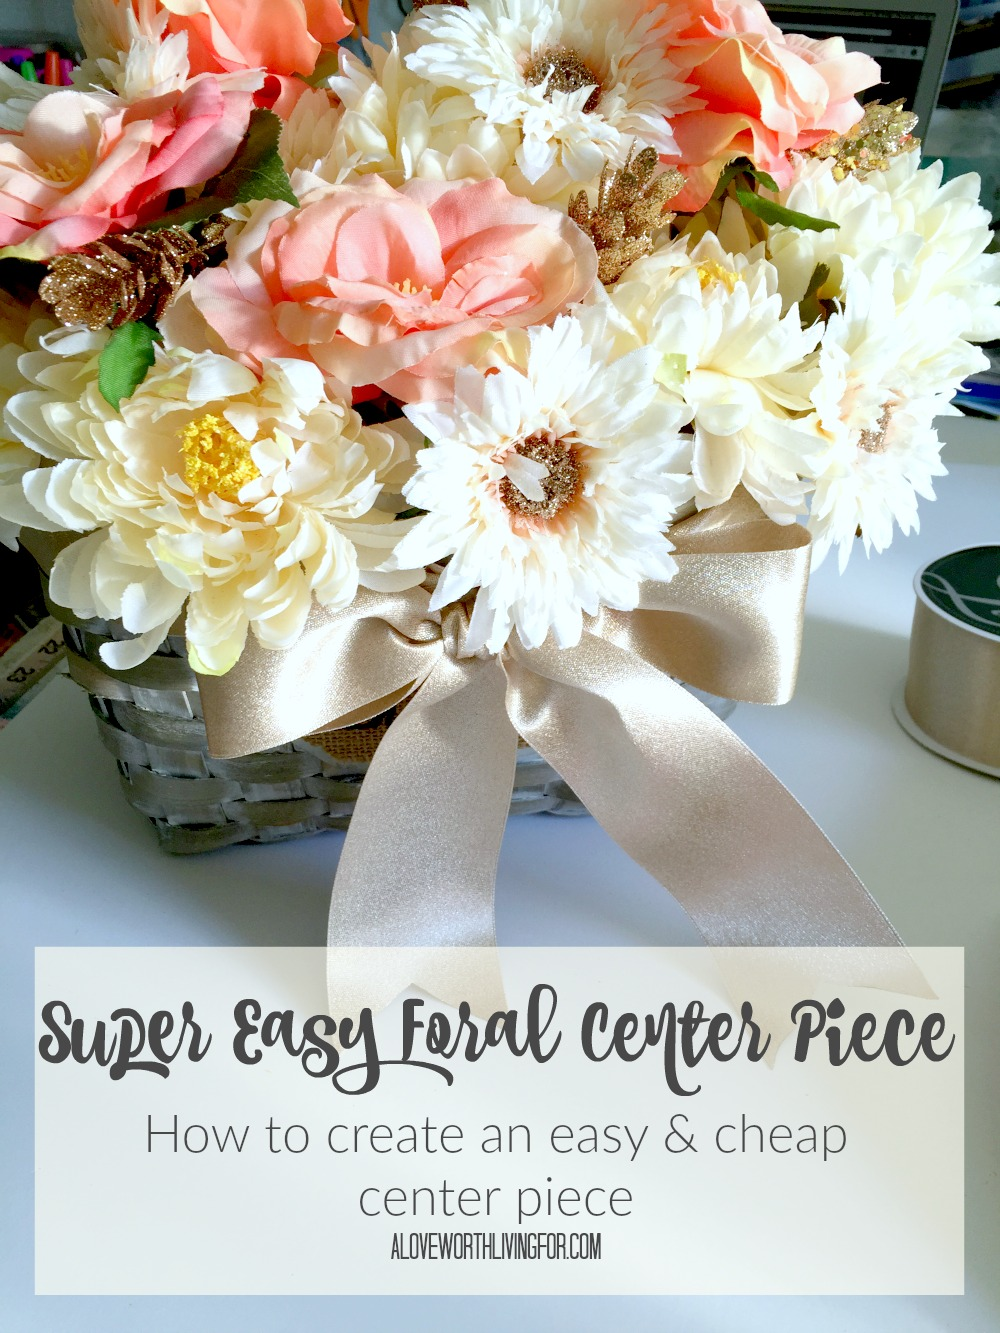 Floral arrangements and centerpieces can be so expensive. Here is how to create your own easy floral center pieces and arrangements. Make an arrangement that fits your style and budget! Plus they're so easy to make you can have on for each season!